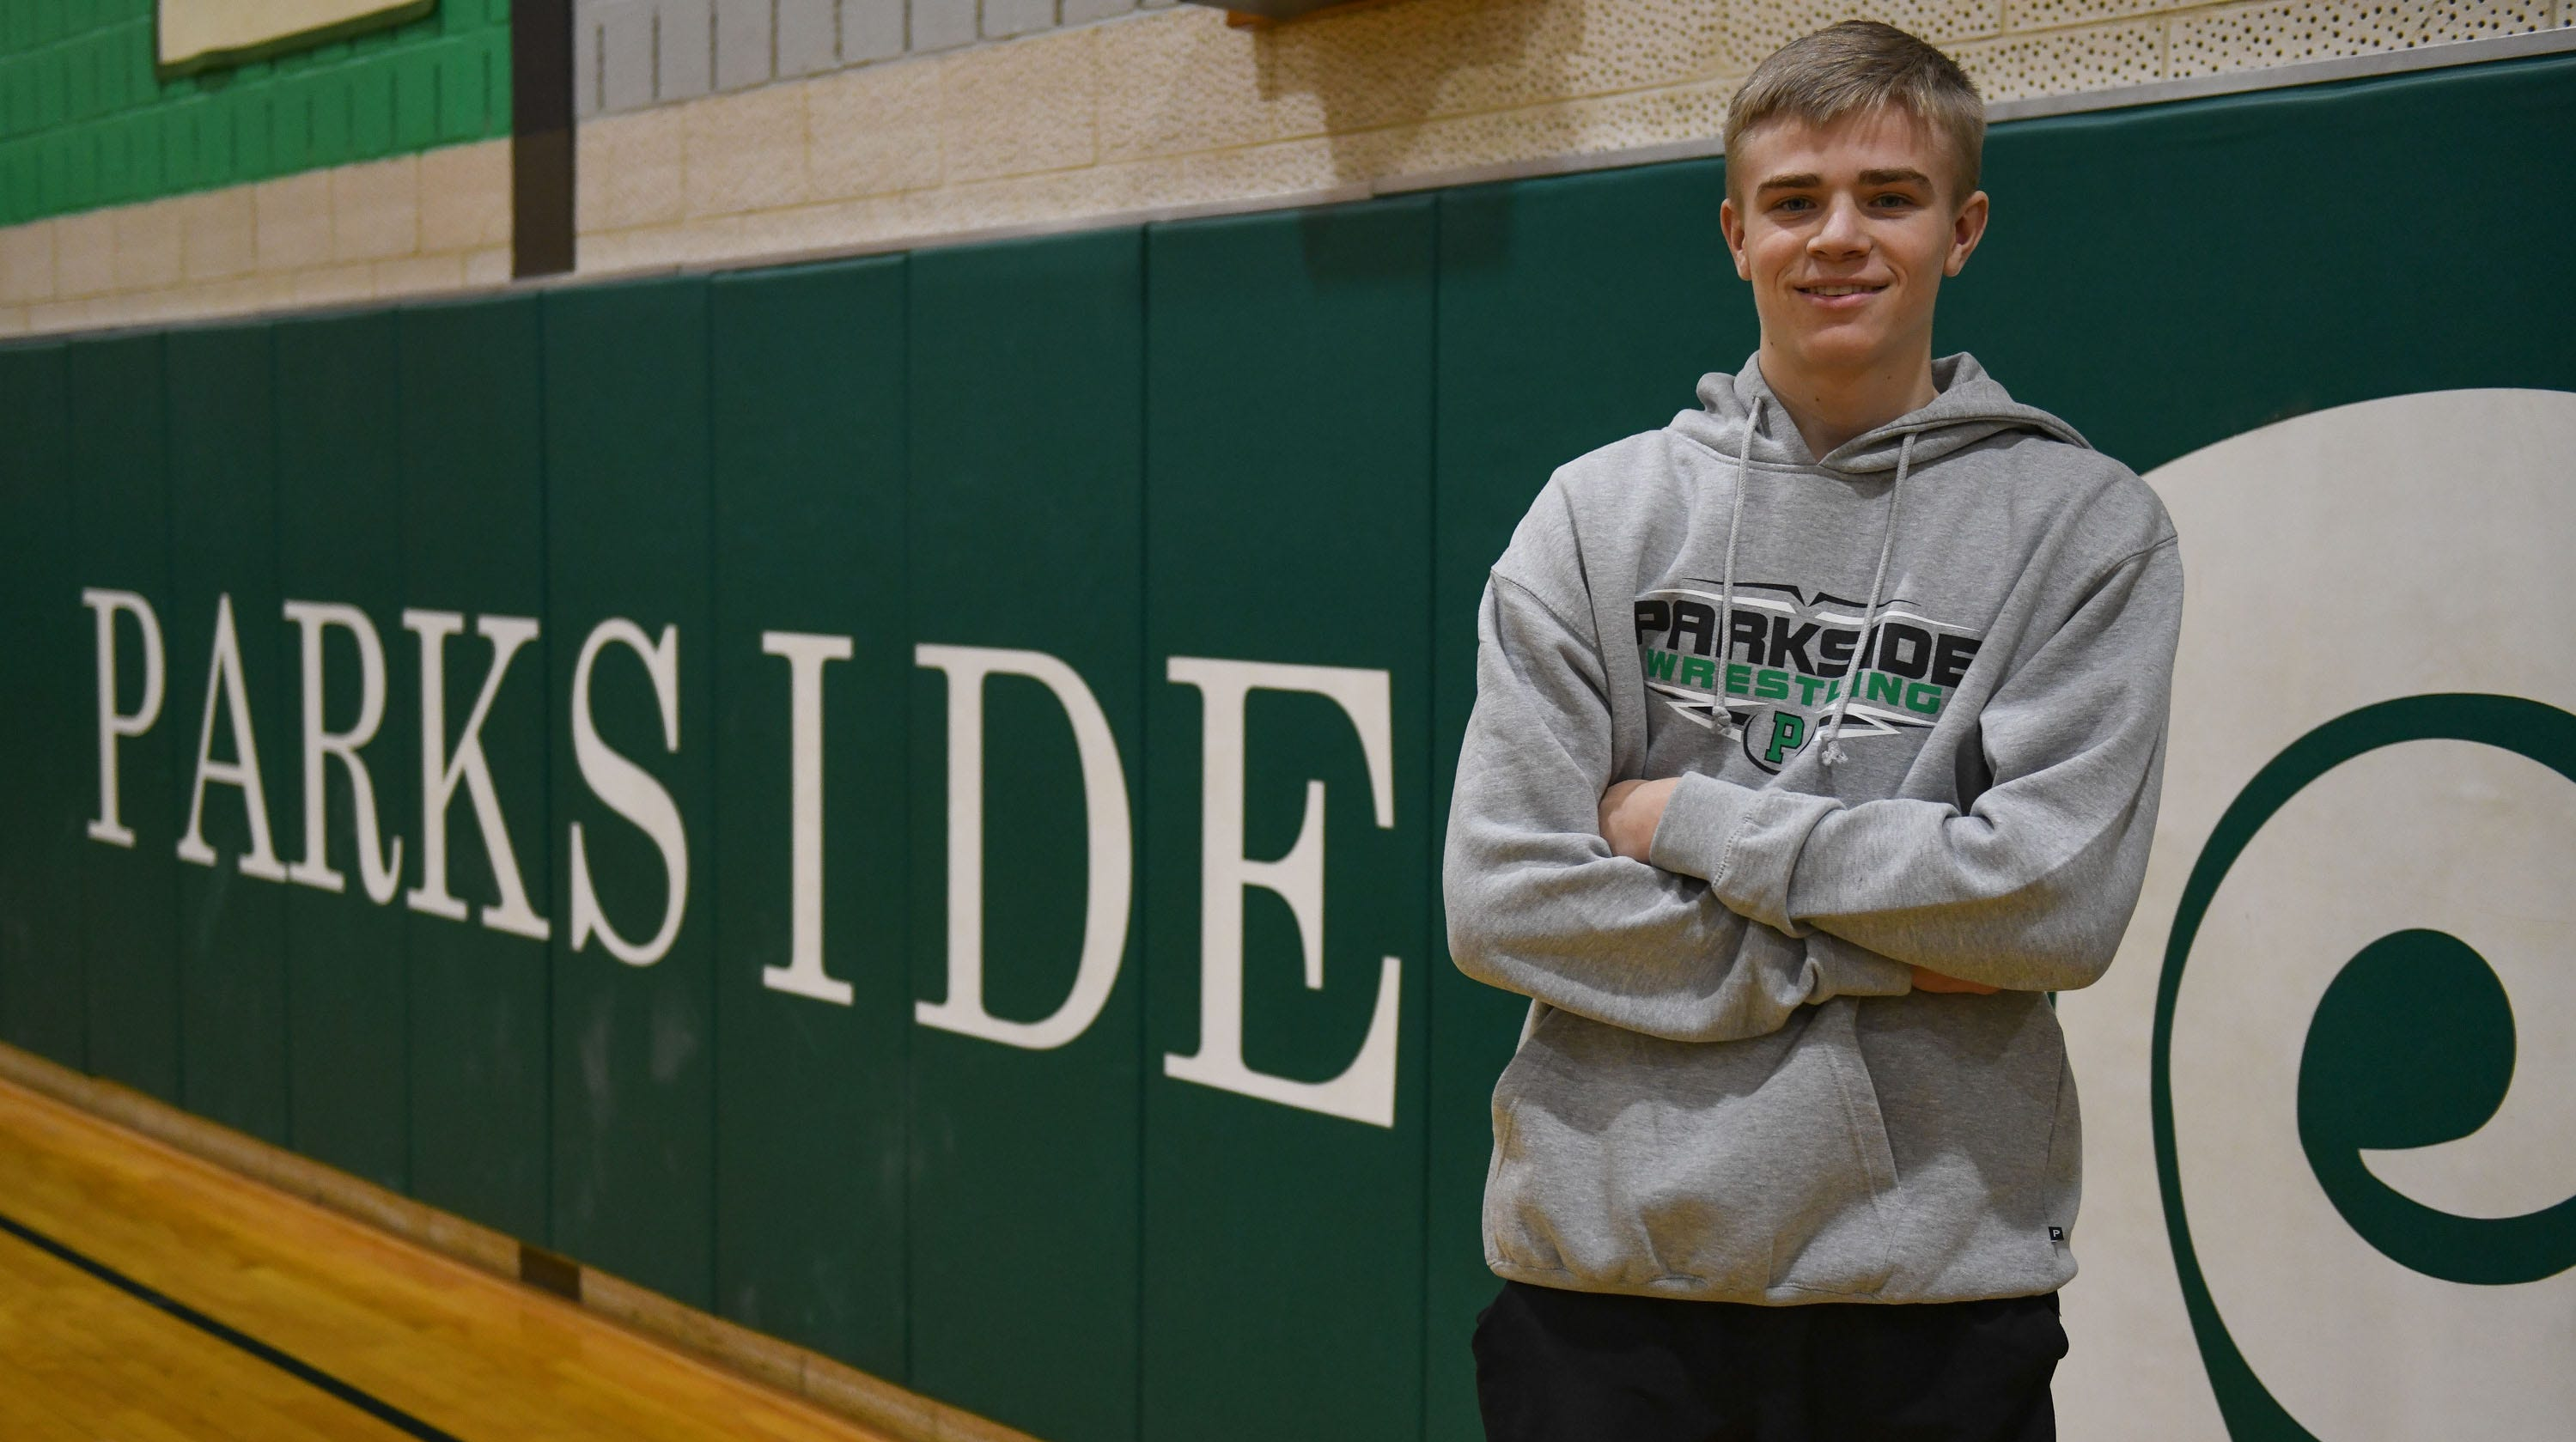 Parkside wrestler gets 100th win, looks for strong ending to high school career